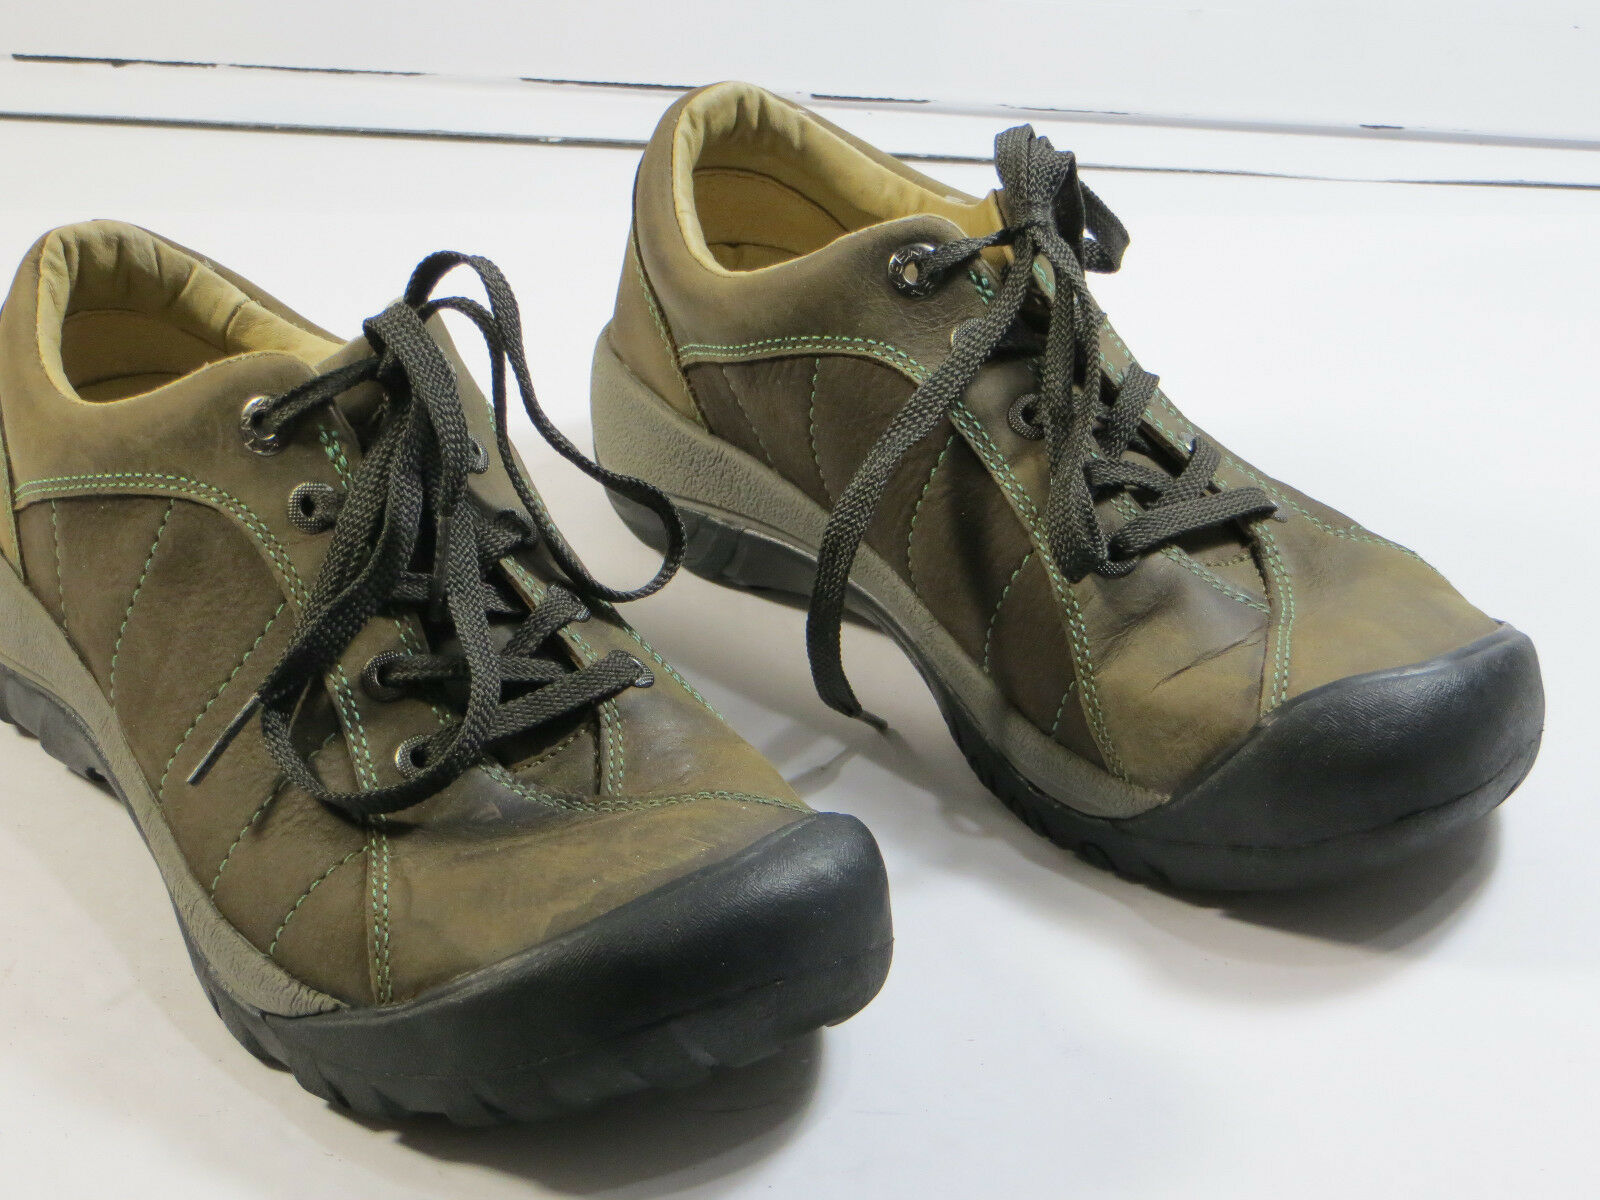 Gr8 cond  Keen Women's fashion sneaker Trail,walk size 7.5 leather,lace up